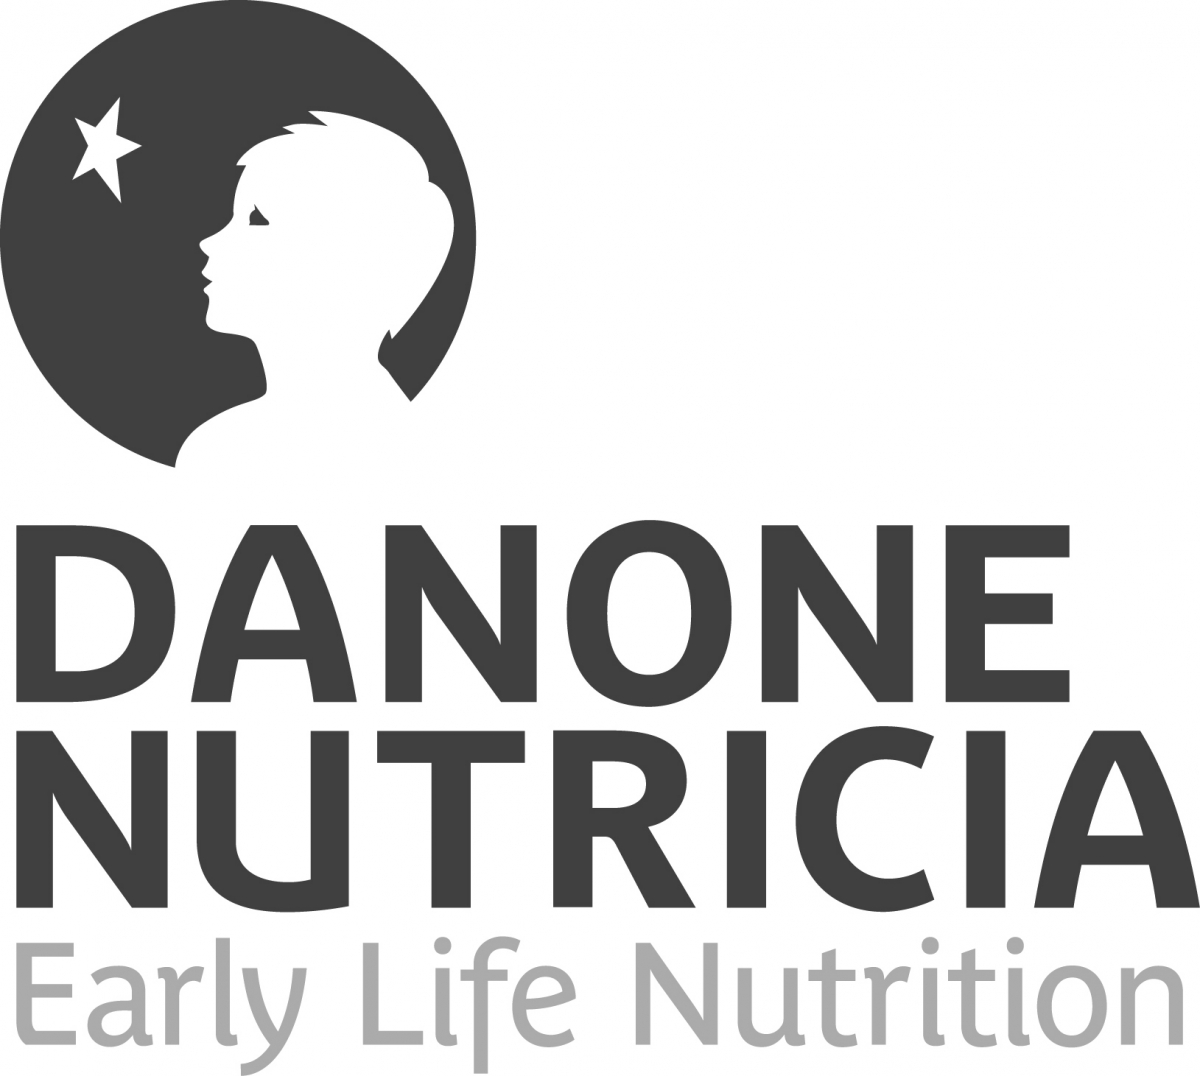 Specialized nutritional products manufacturer